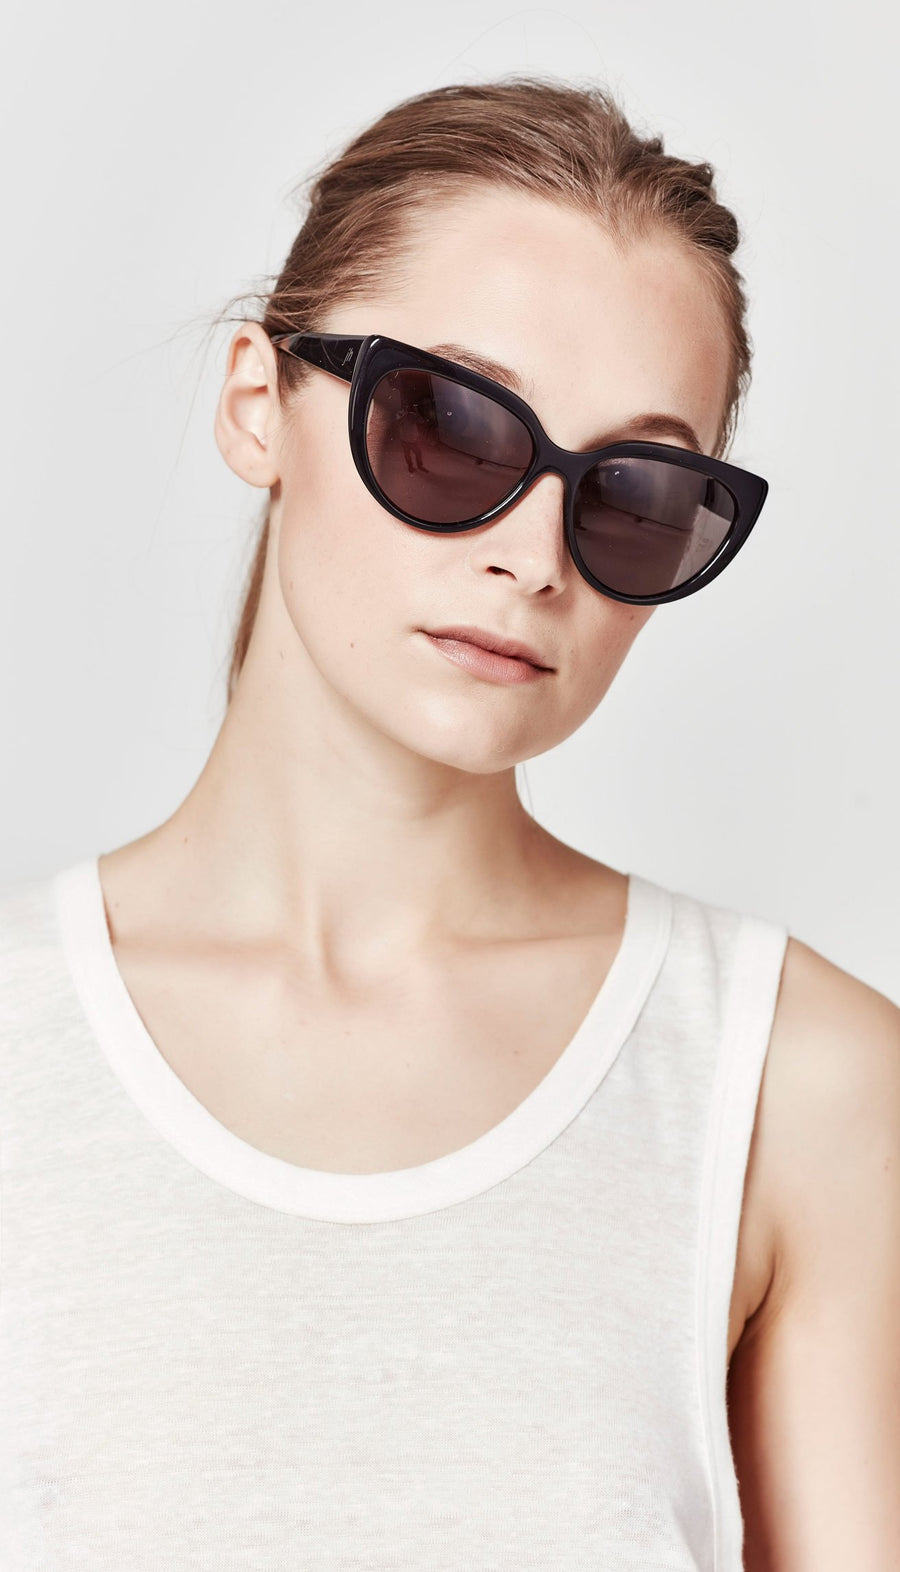 Juliette Hogan | No. 02 Eyewear Black